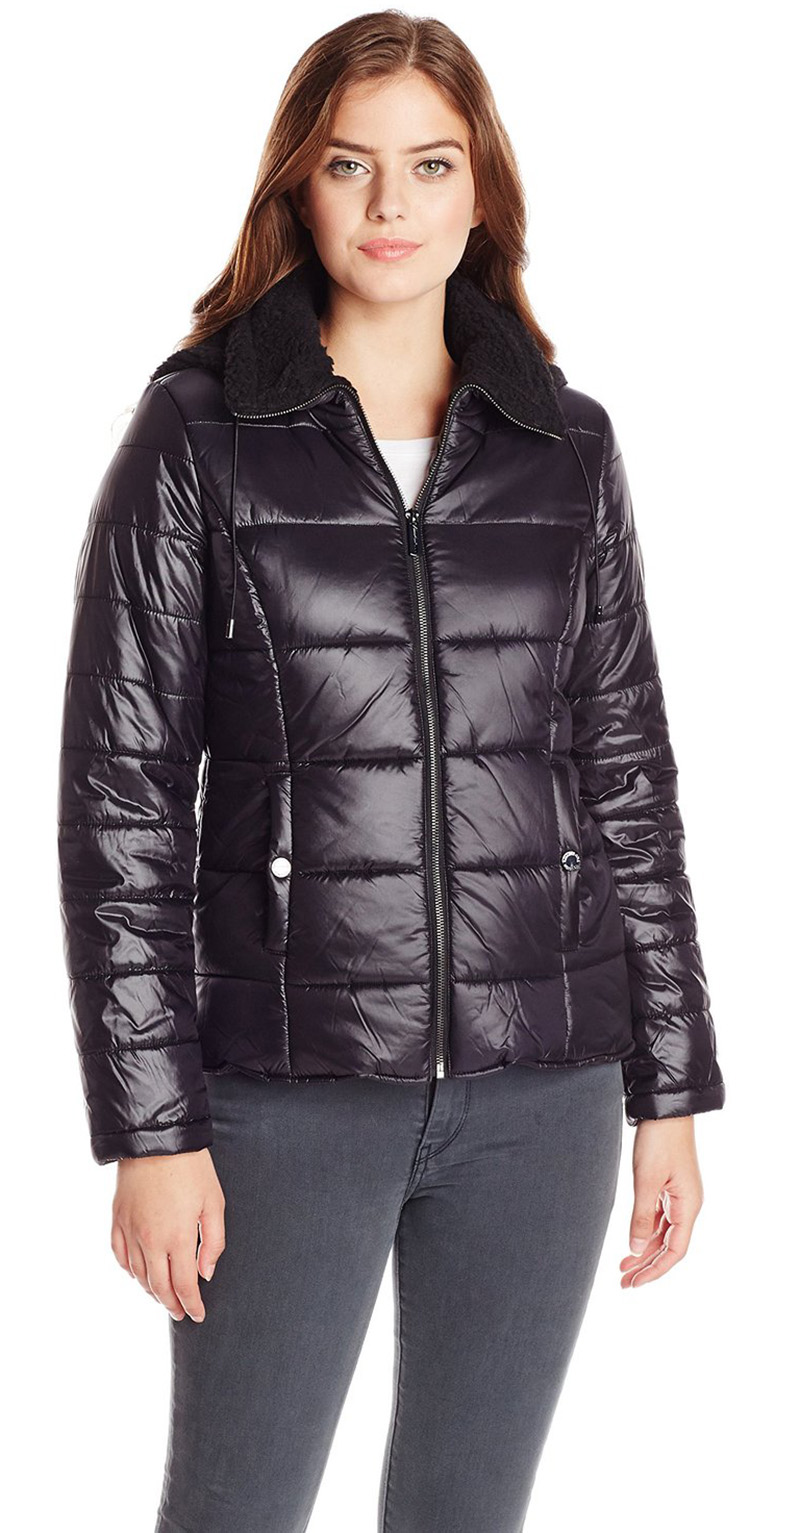 Kenneth cole jackets for women